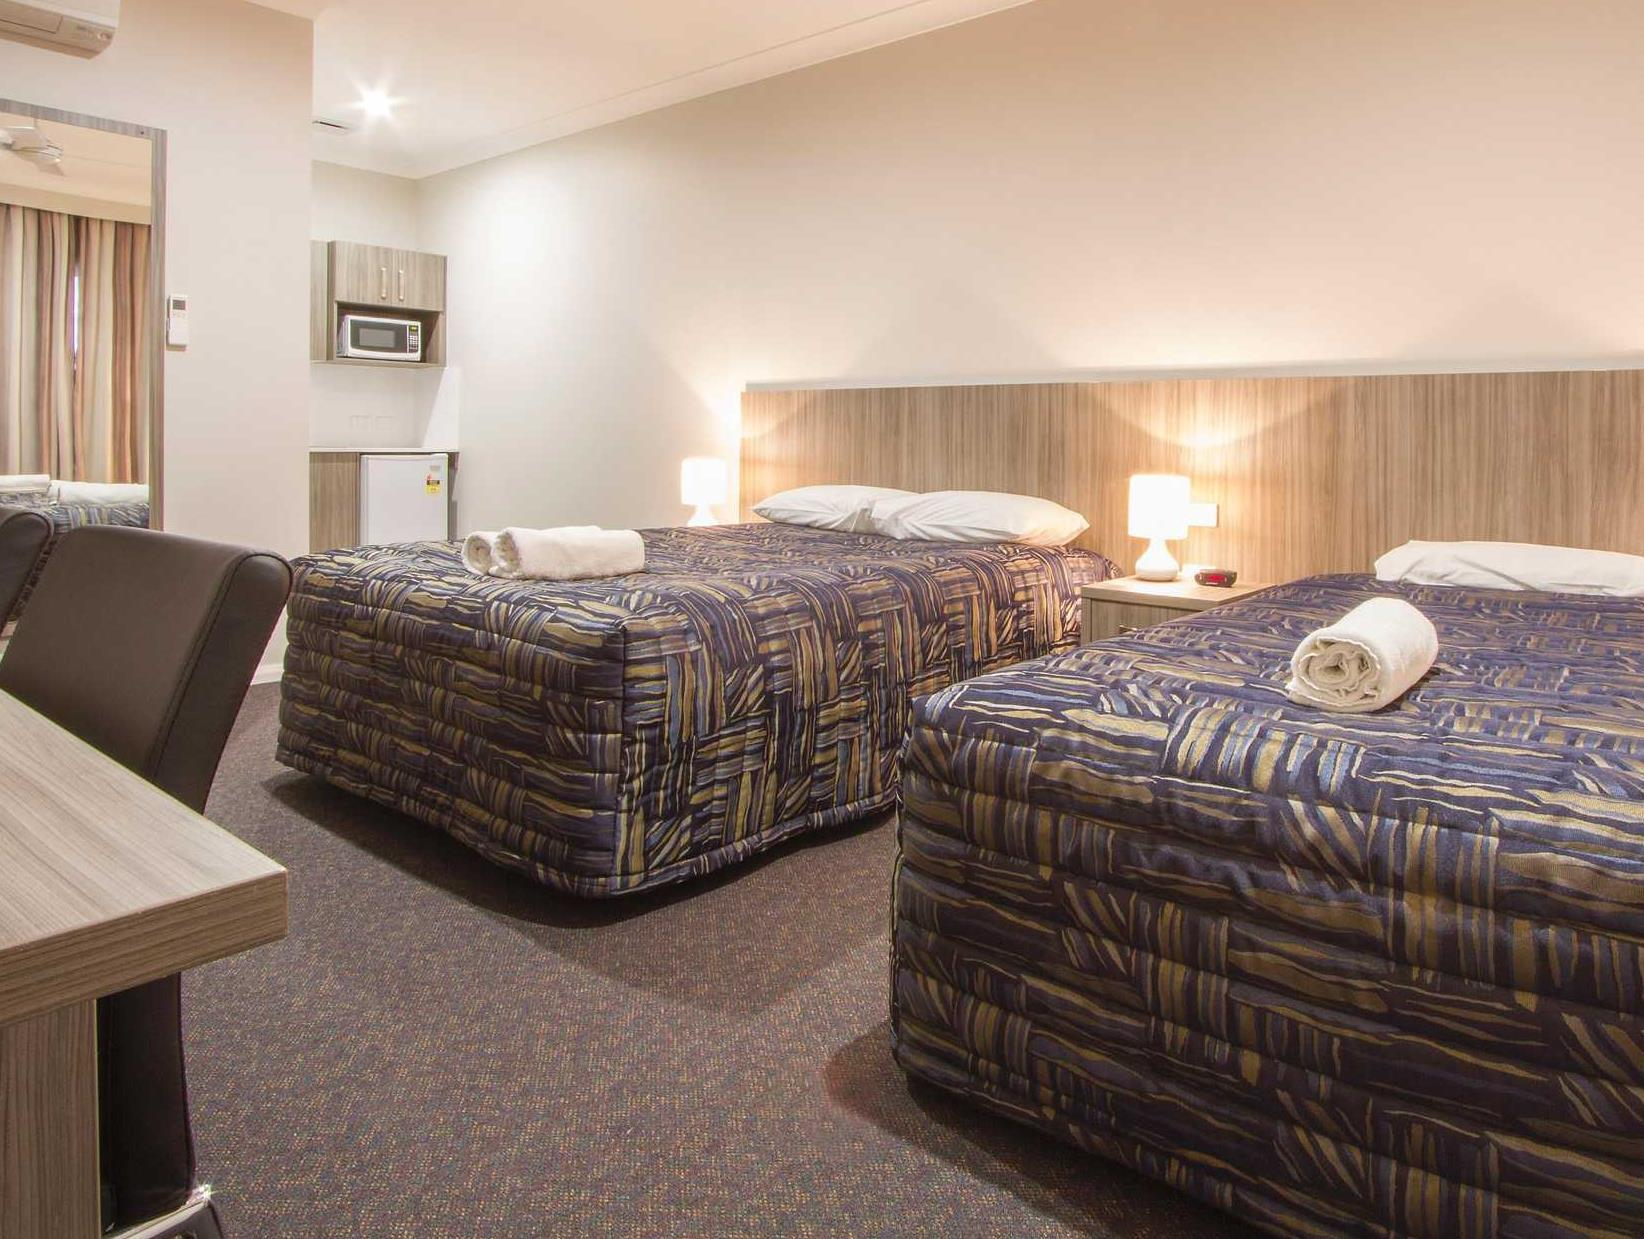 Ground Floor Executive Room with 1 Queen Bed and 1 Single Bed with Kitchenette - No Smoking